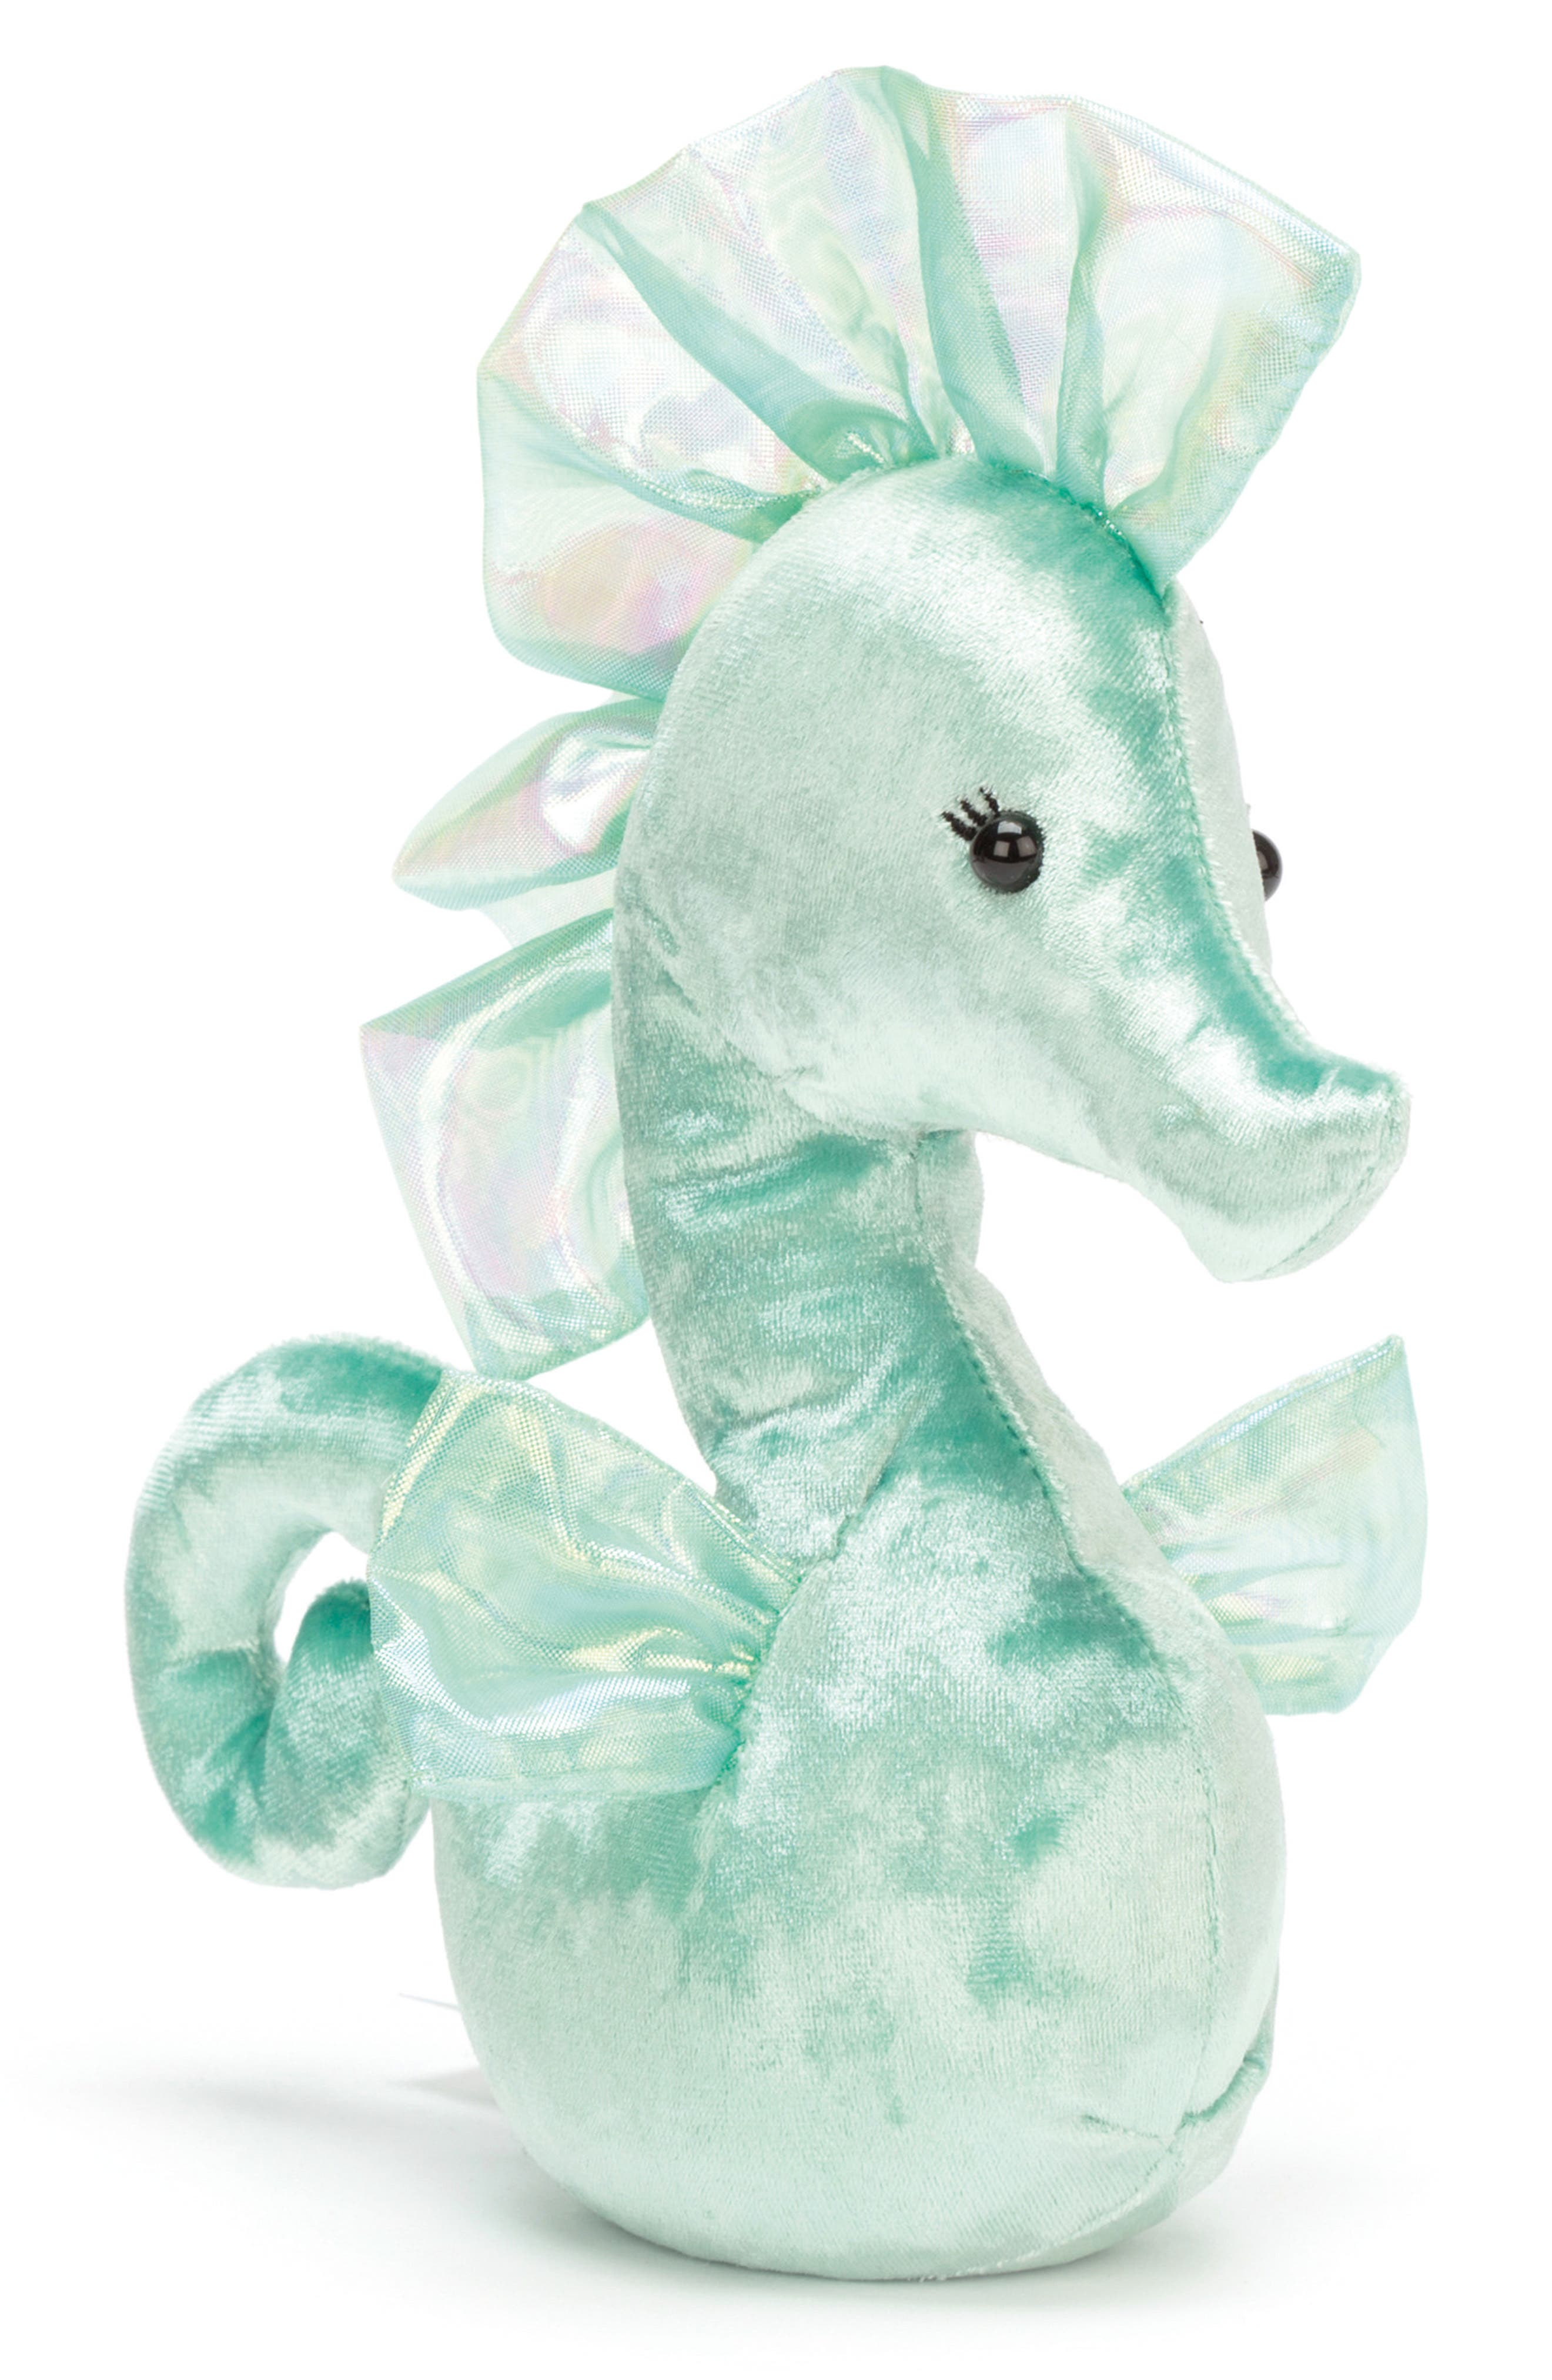 Coral Cuties Green Seahorse Stuffed Animal,                         Main,                         color, 330